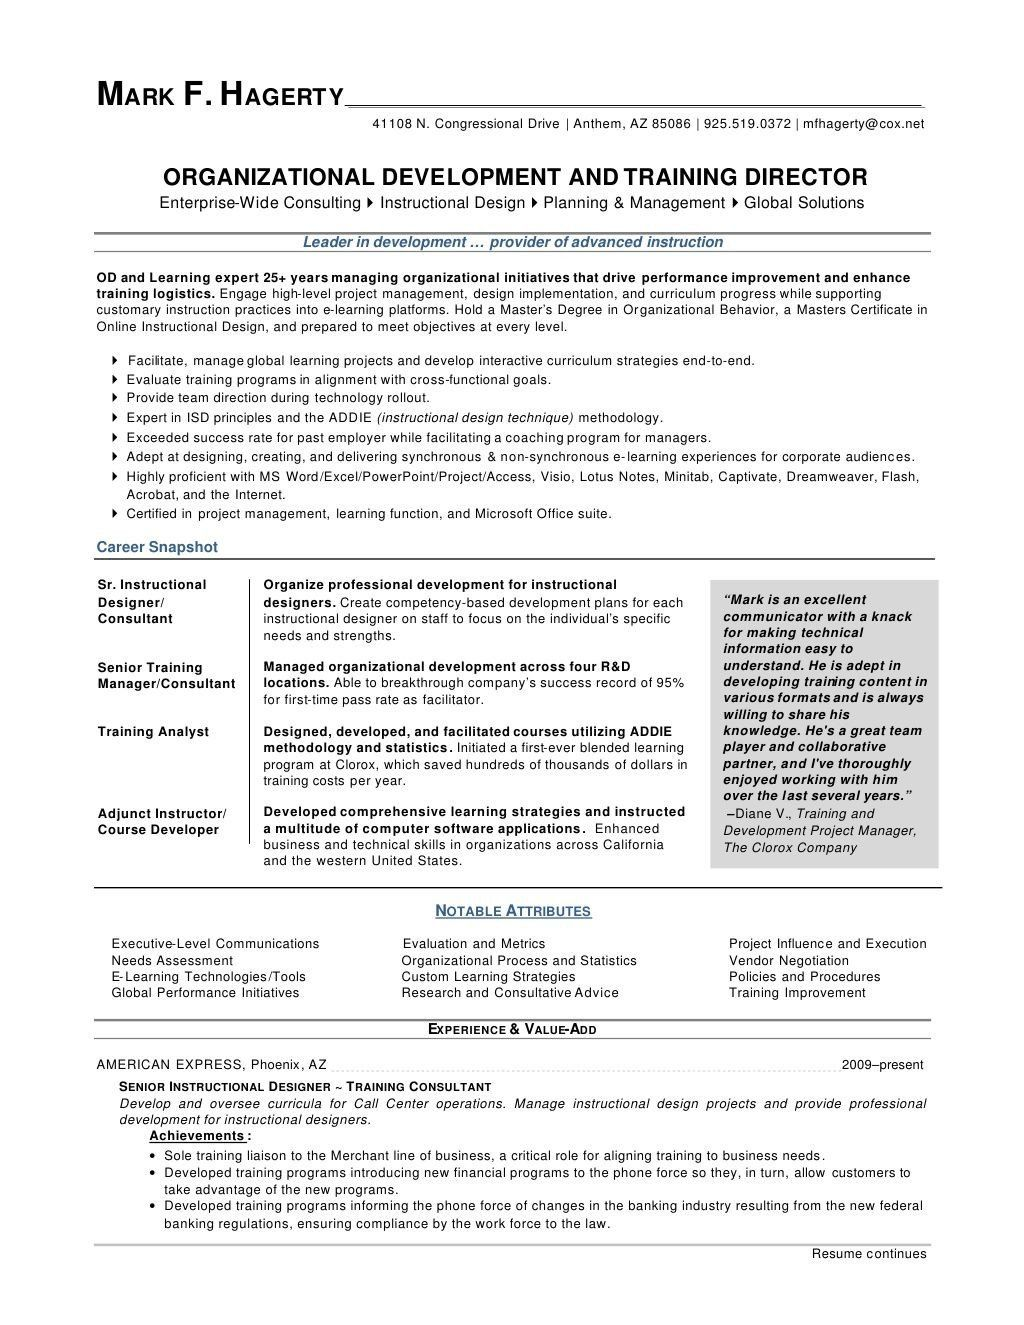 Leadership Skills Examples for Resume Mark F Hagerty Od Training Director Resume by Mfhagerty Via